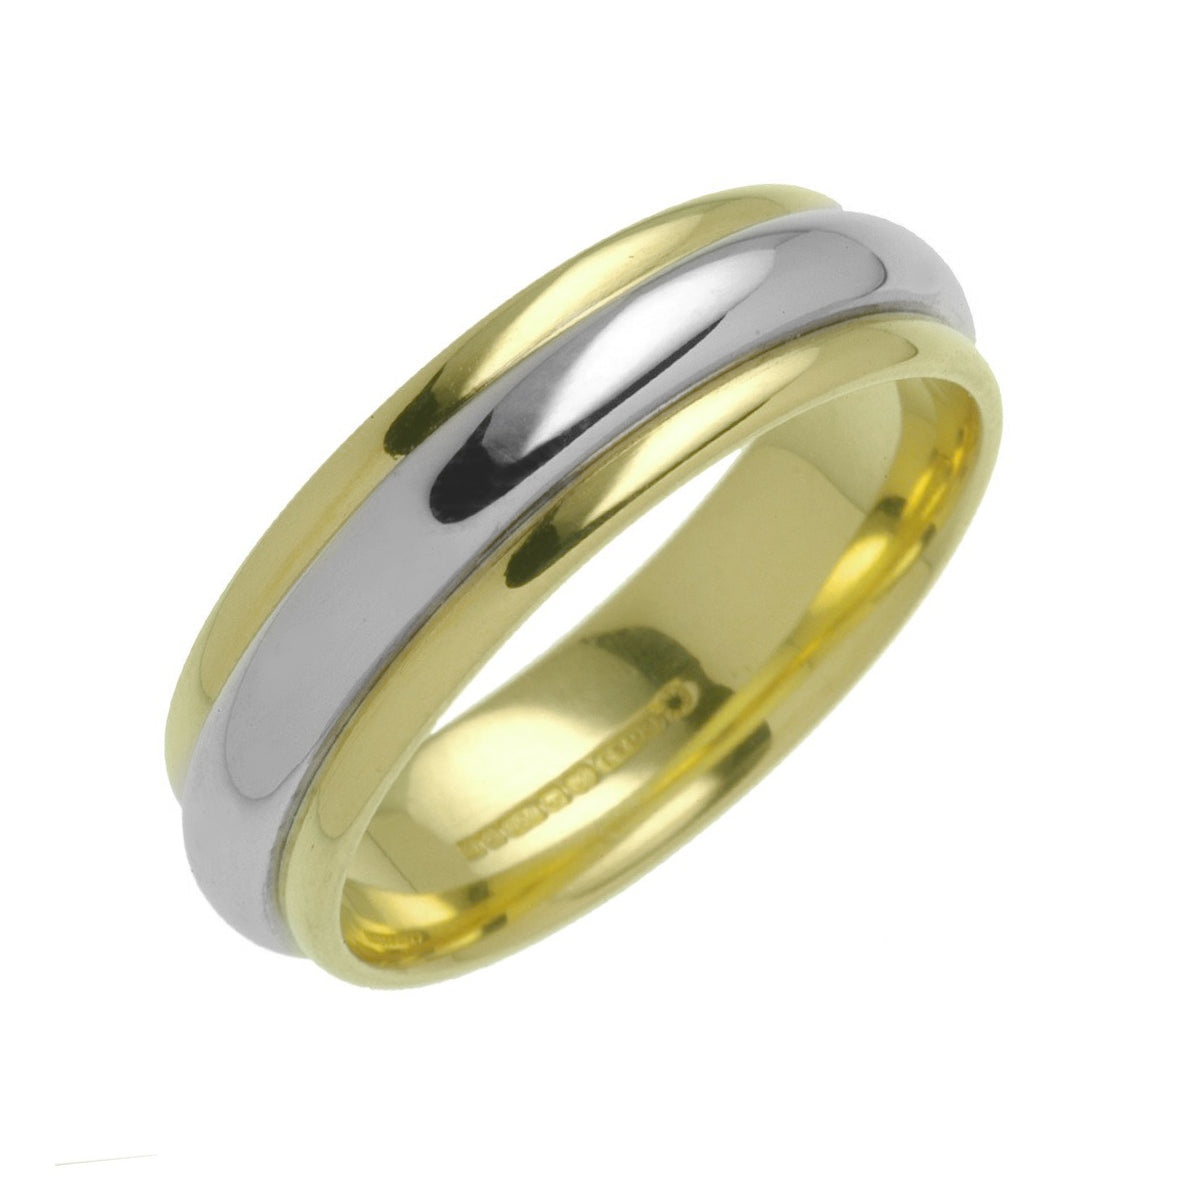 18ct Yellow and White Gold Two Tone Wedding Ring